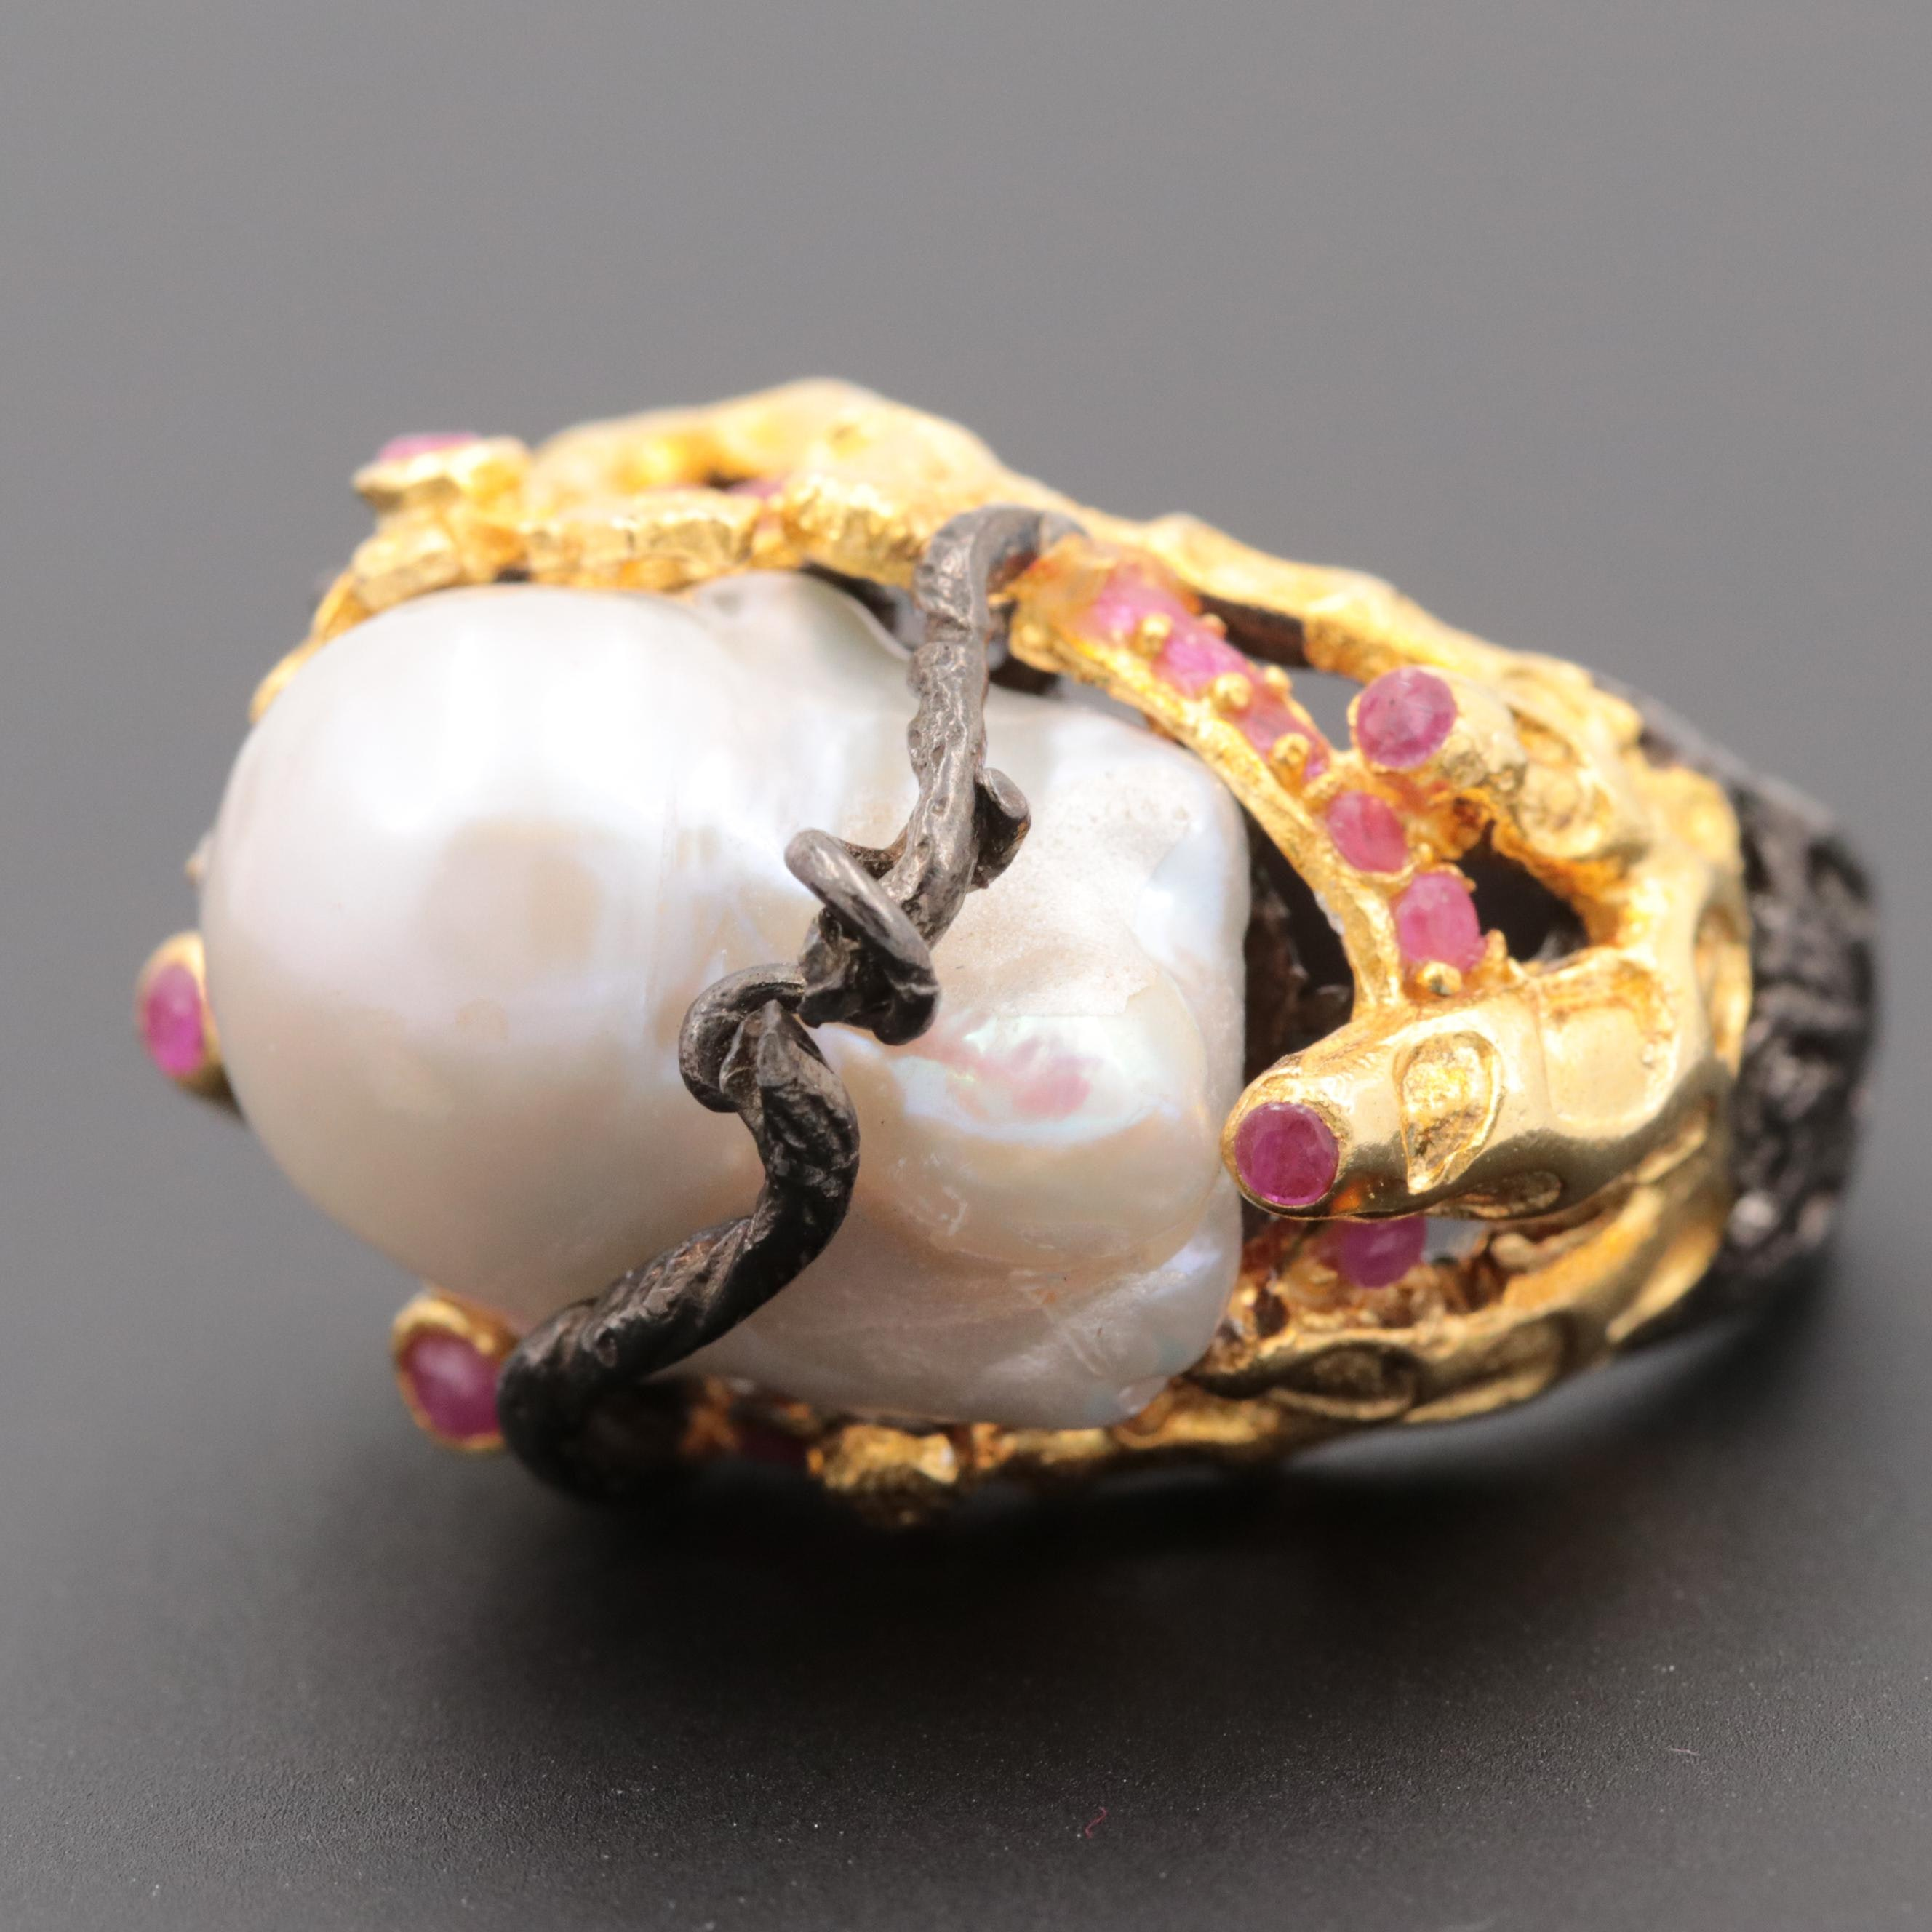 Oxidized Sterling Silver Cultured Pearl and Ruby Ring with Gold Wash Accents